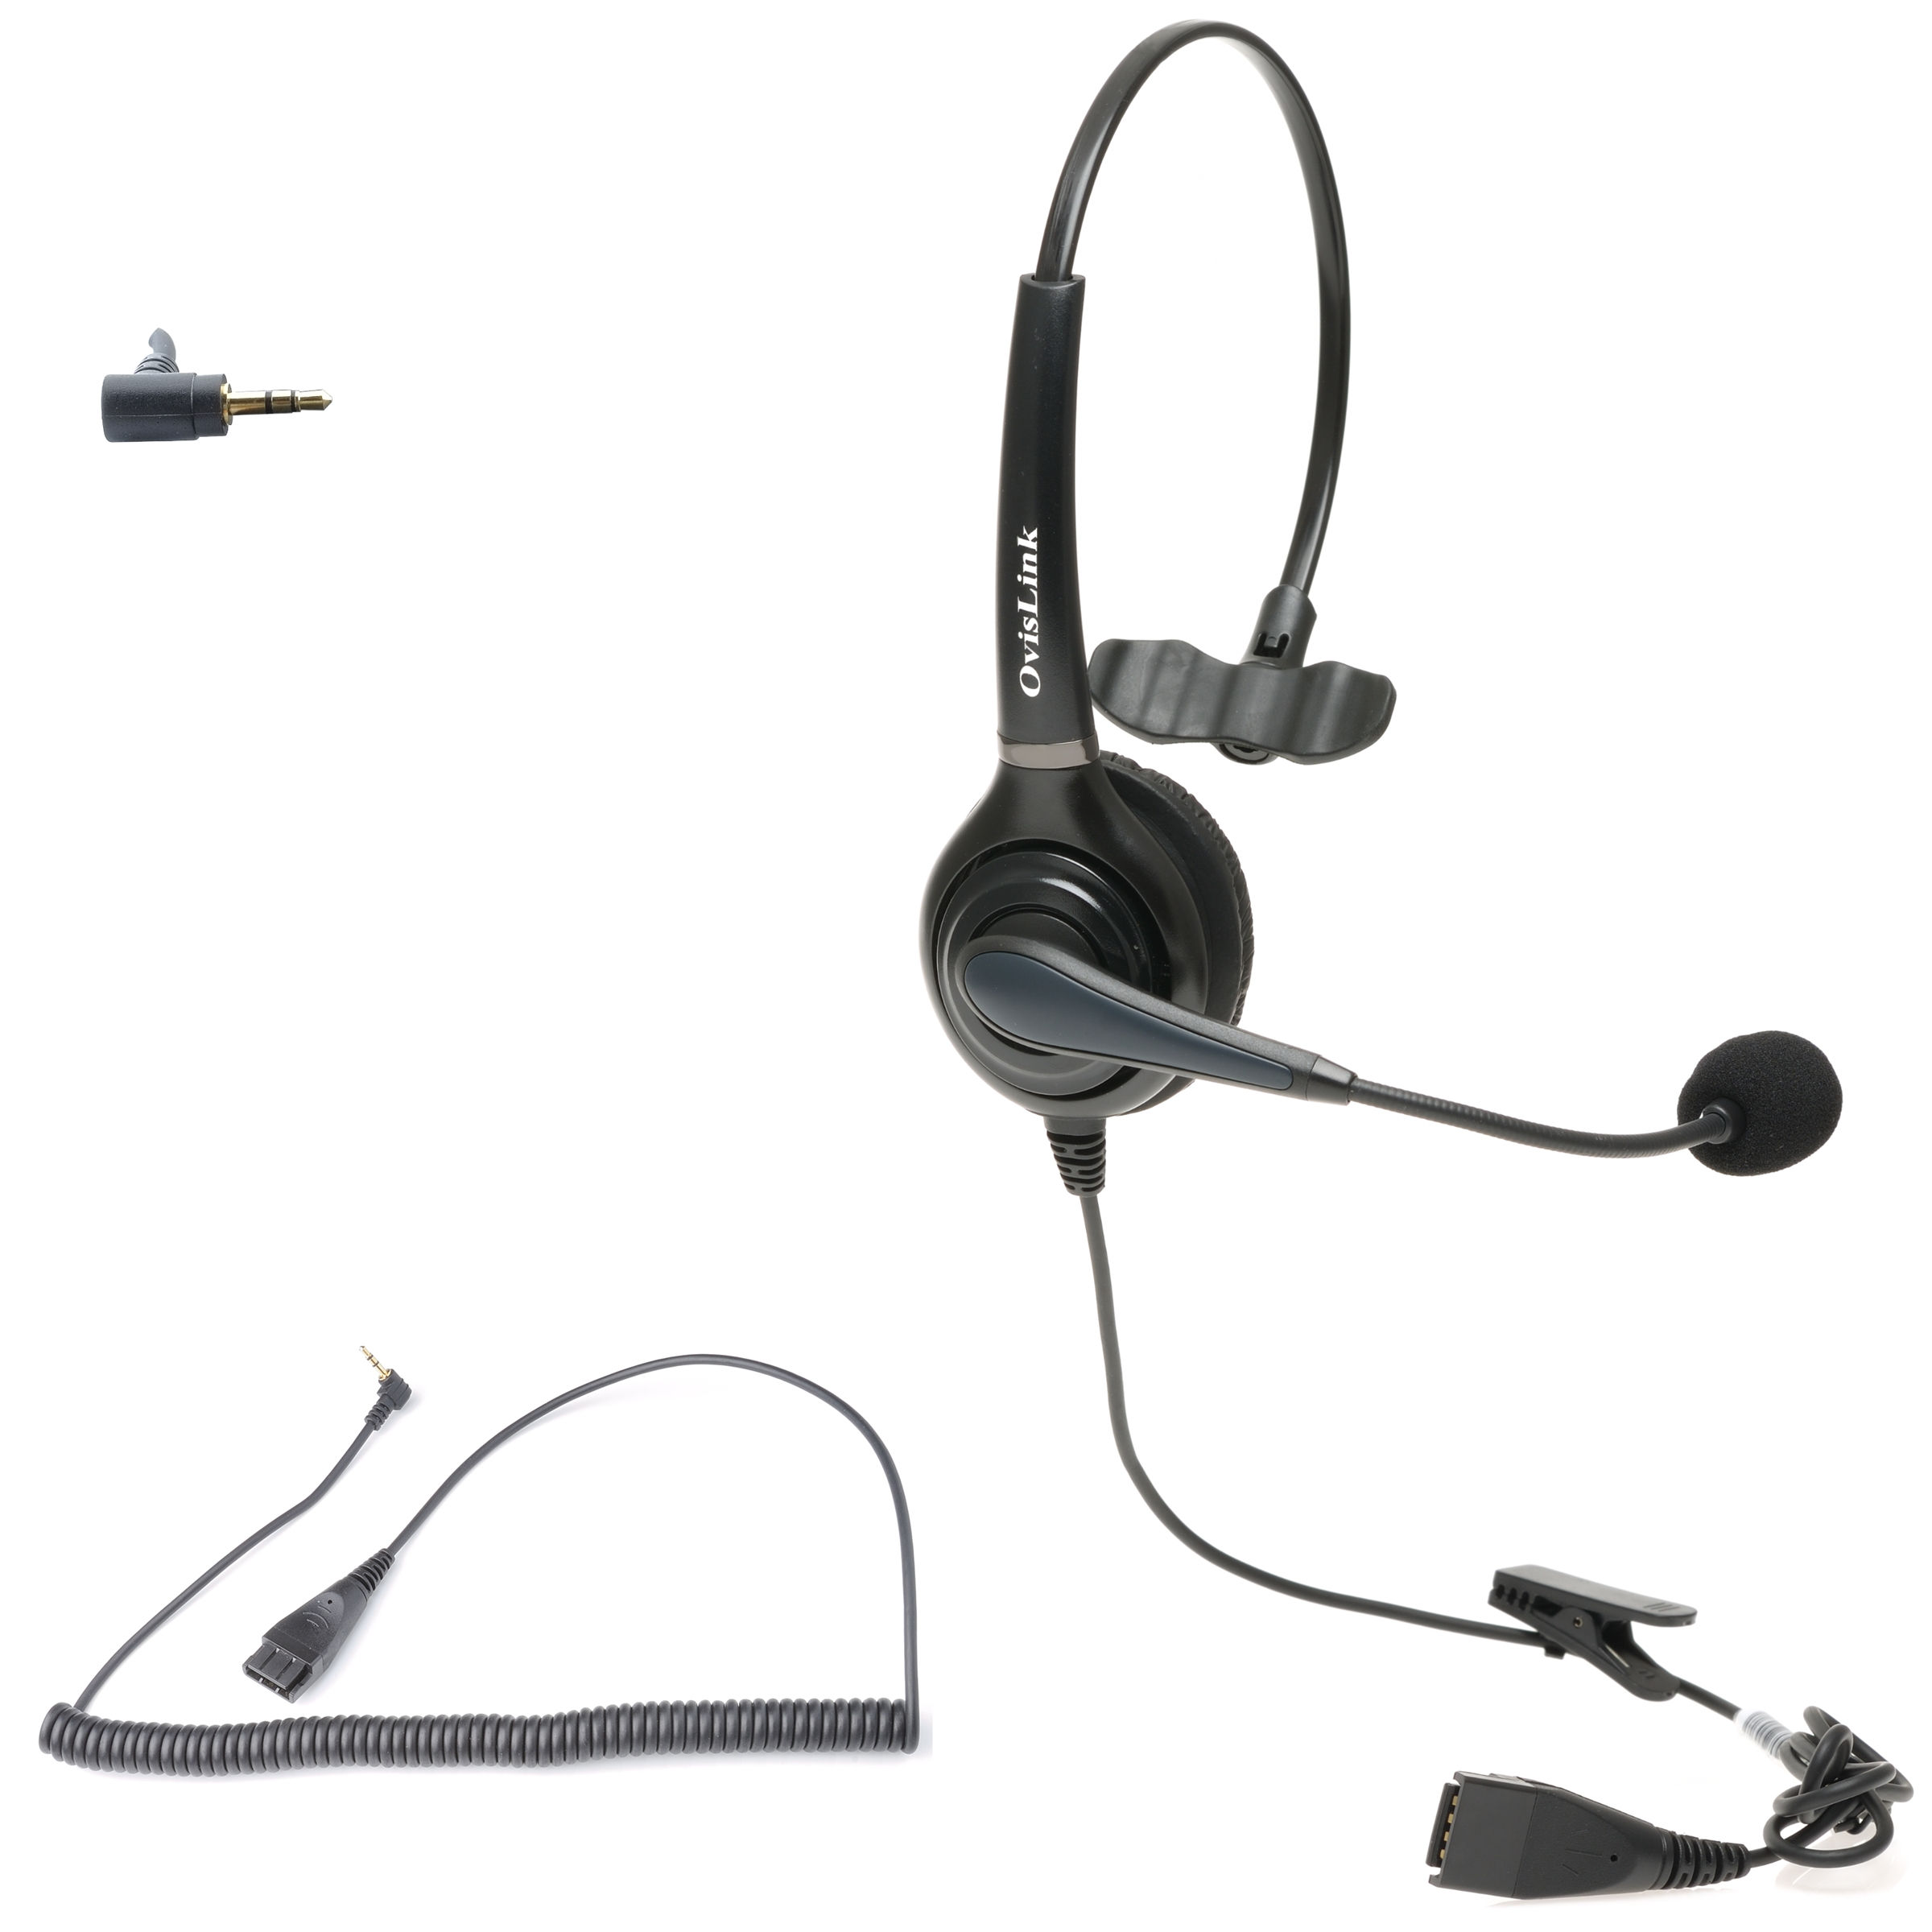 d1d9be07bc0 AT&T Corded Phone headset.